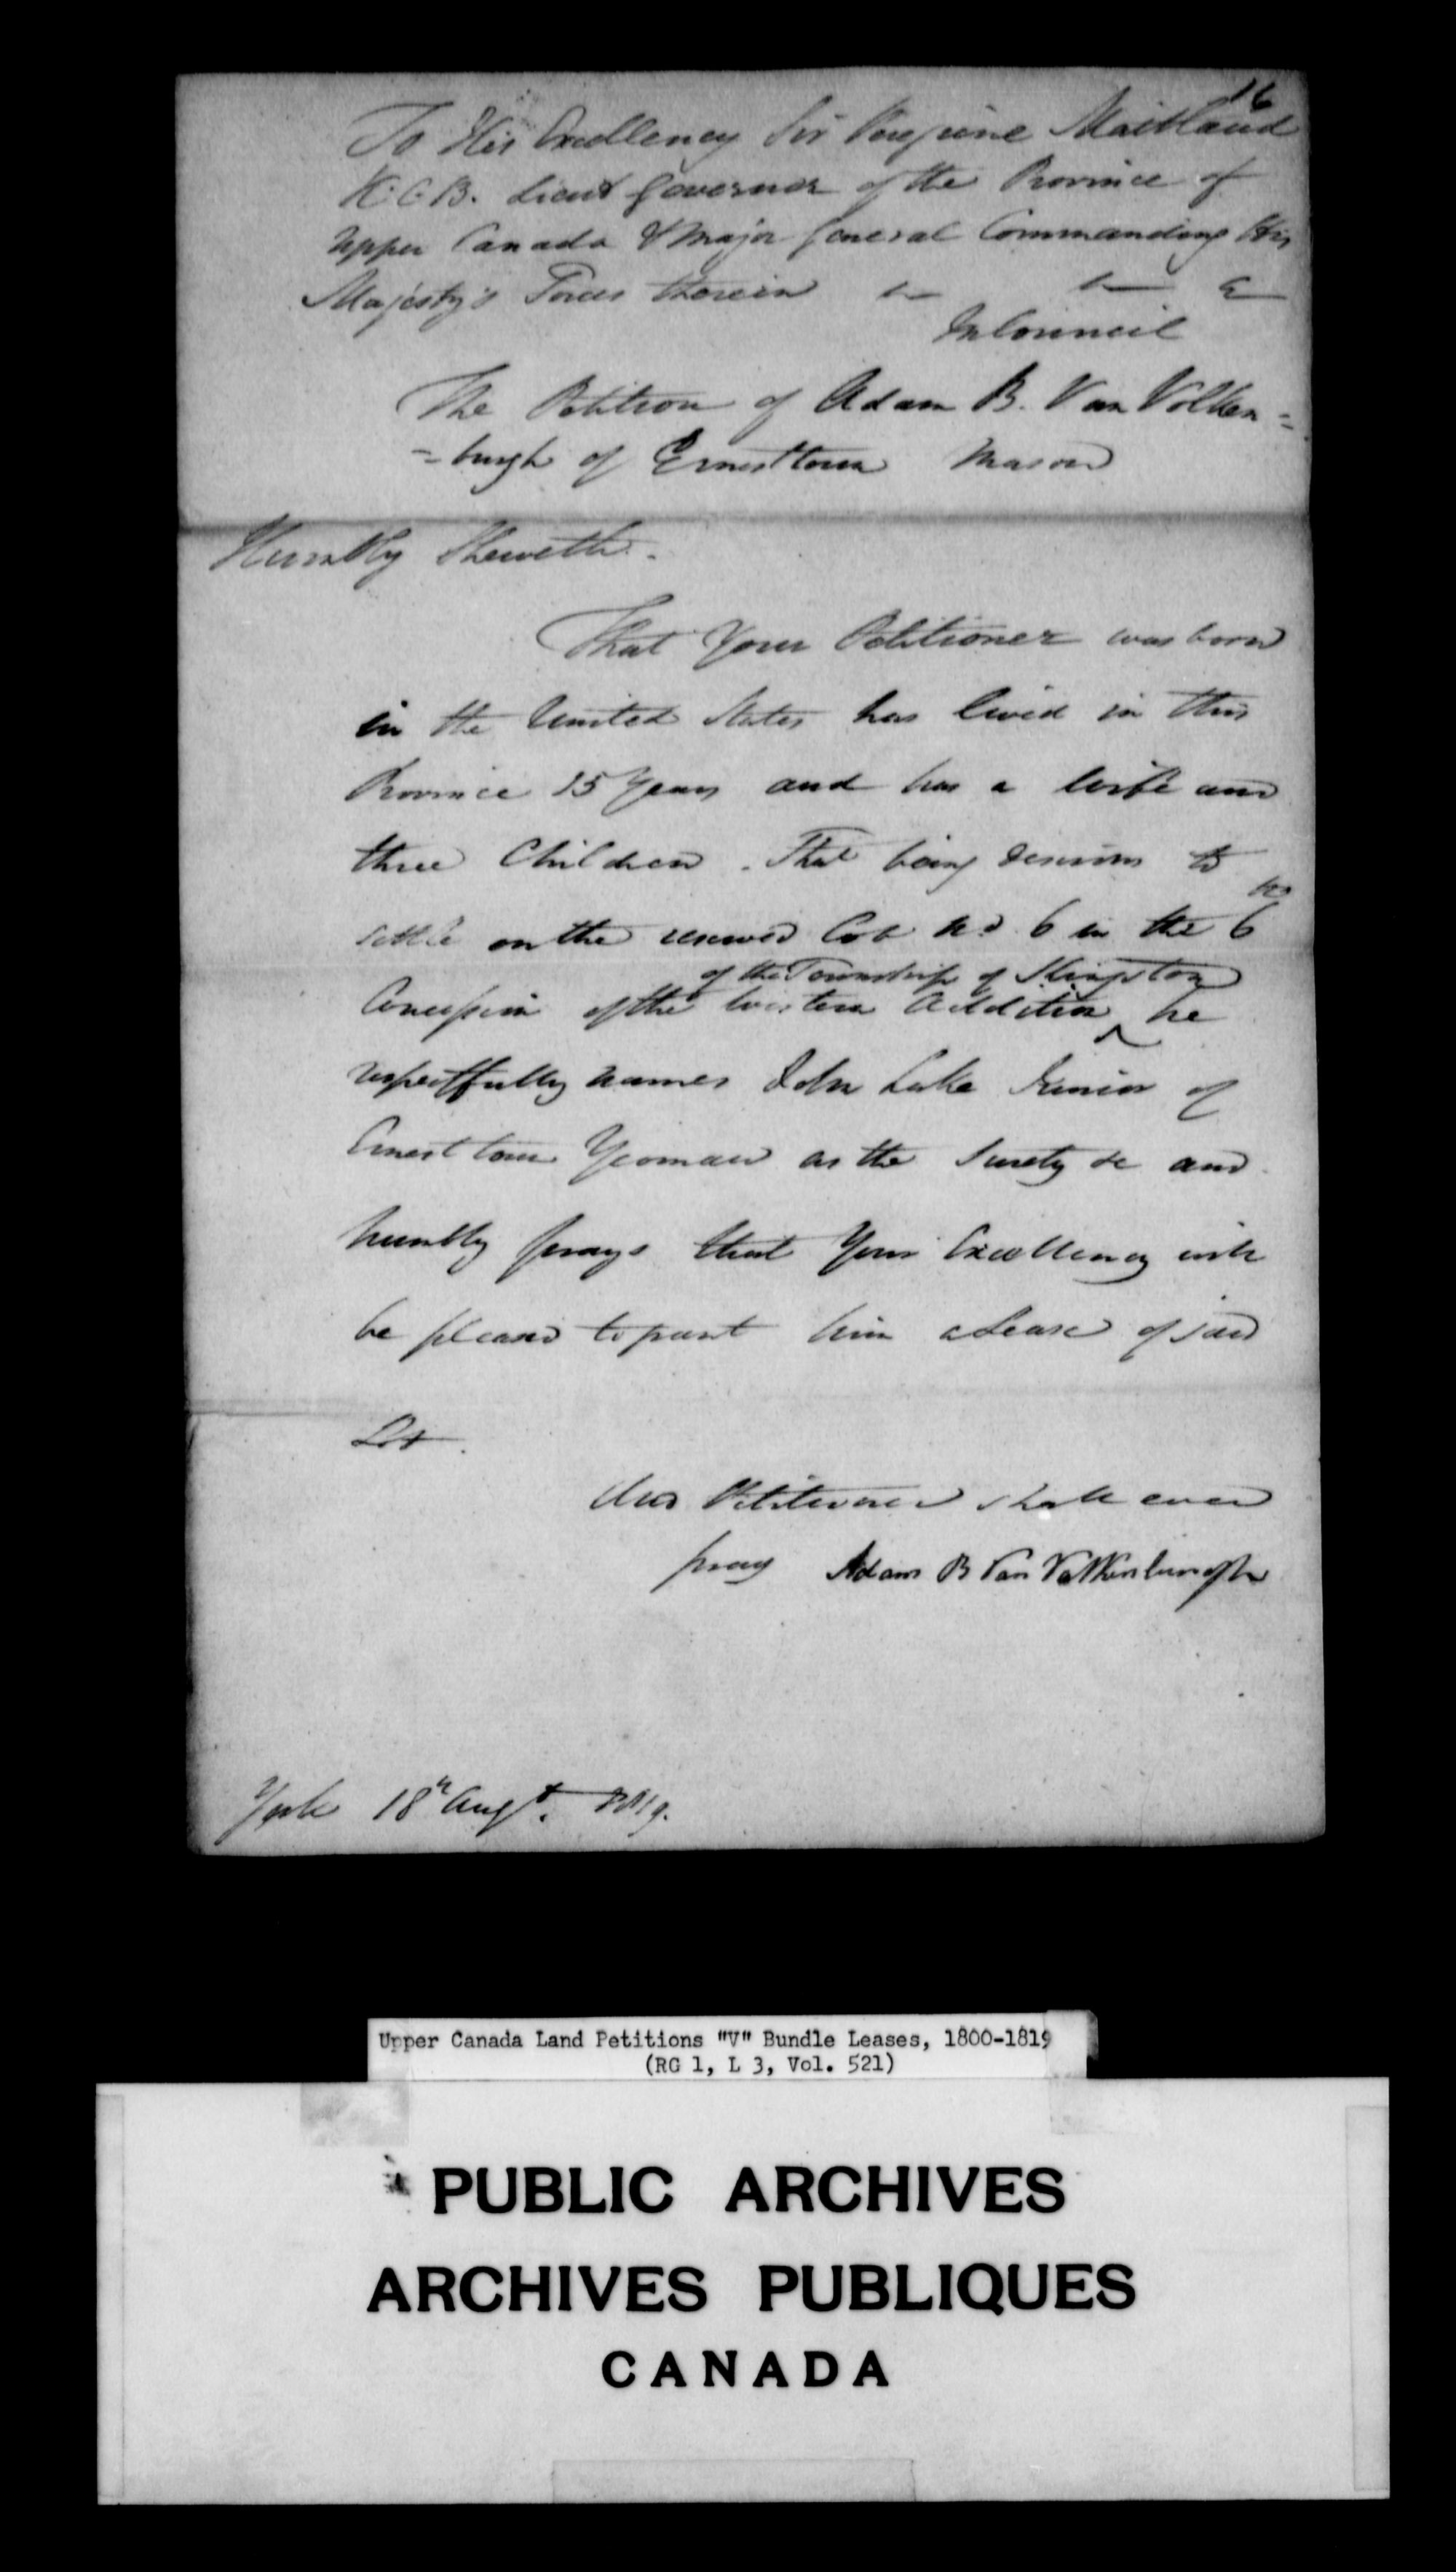 Title: Upper Canada Land Petitions (1763-1865) - Mikan Number: 205131 - Microform: c-2950